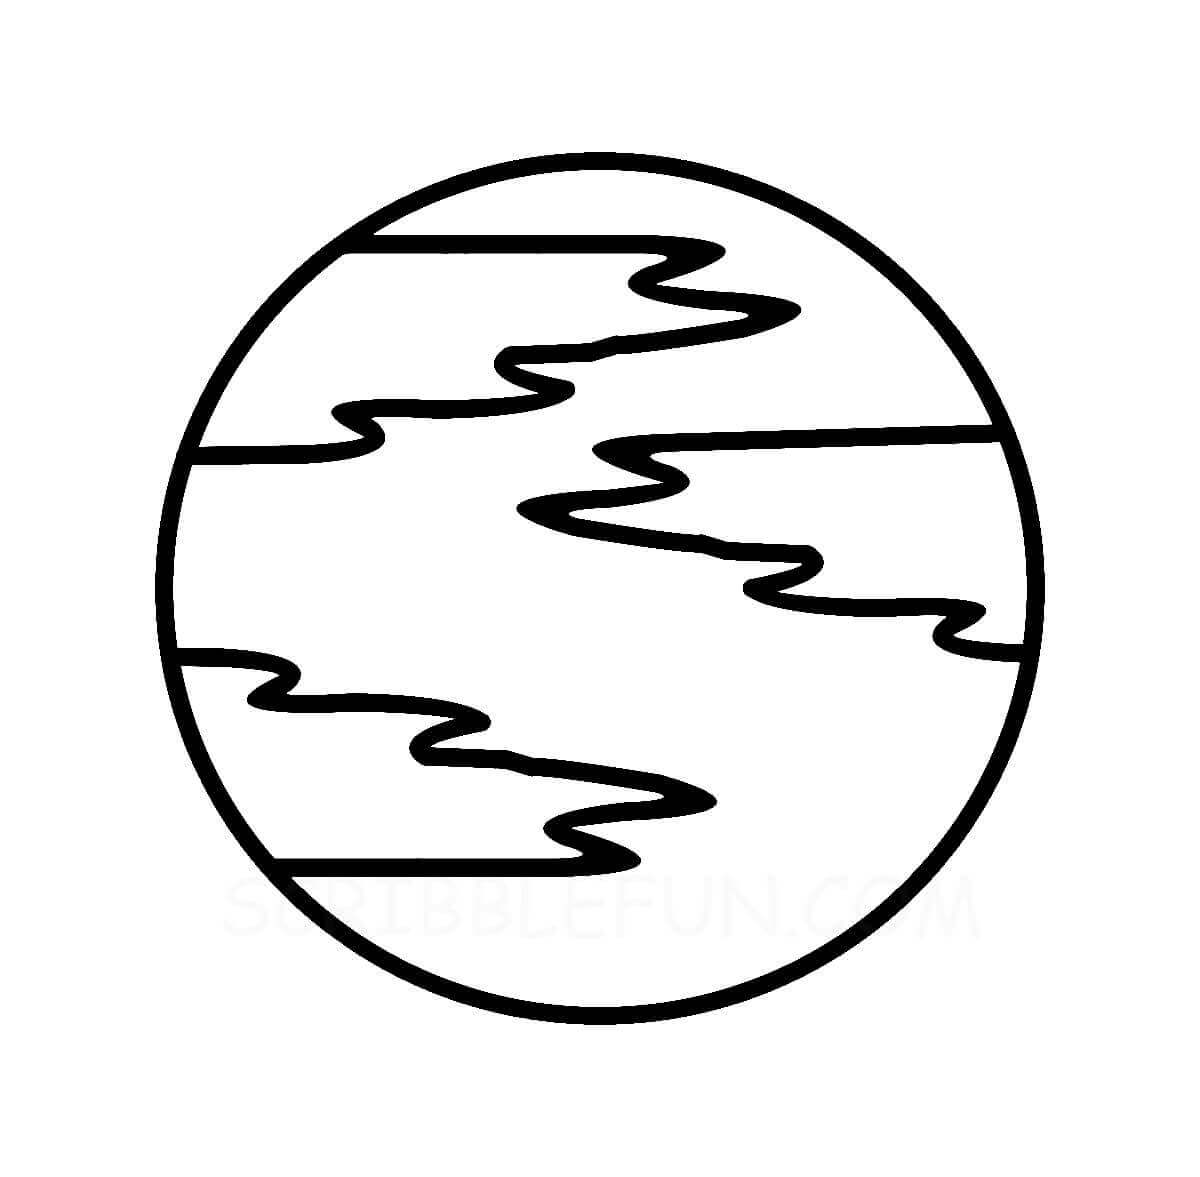 Planet Mercury coloring page